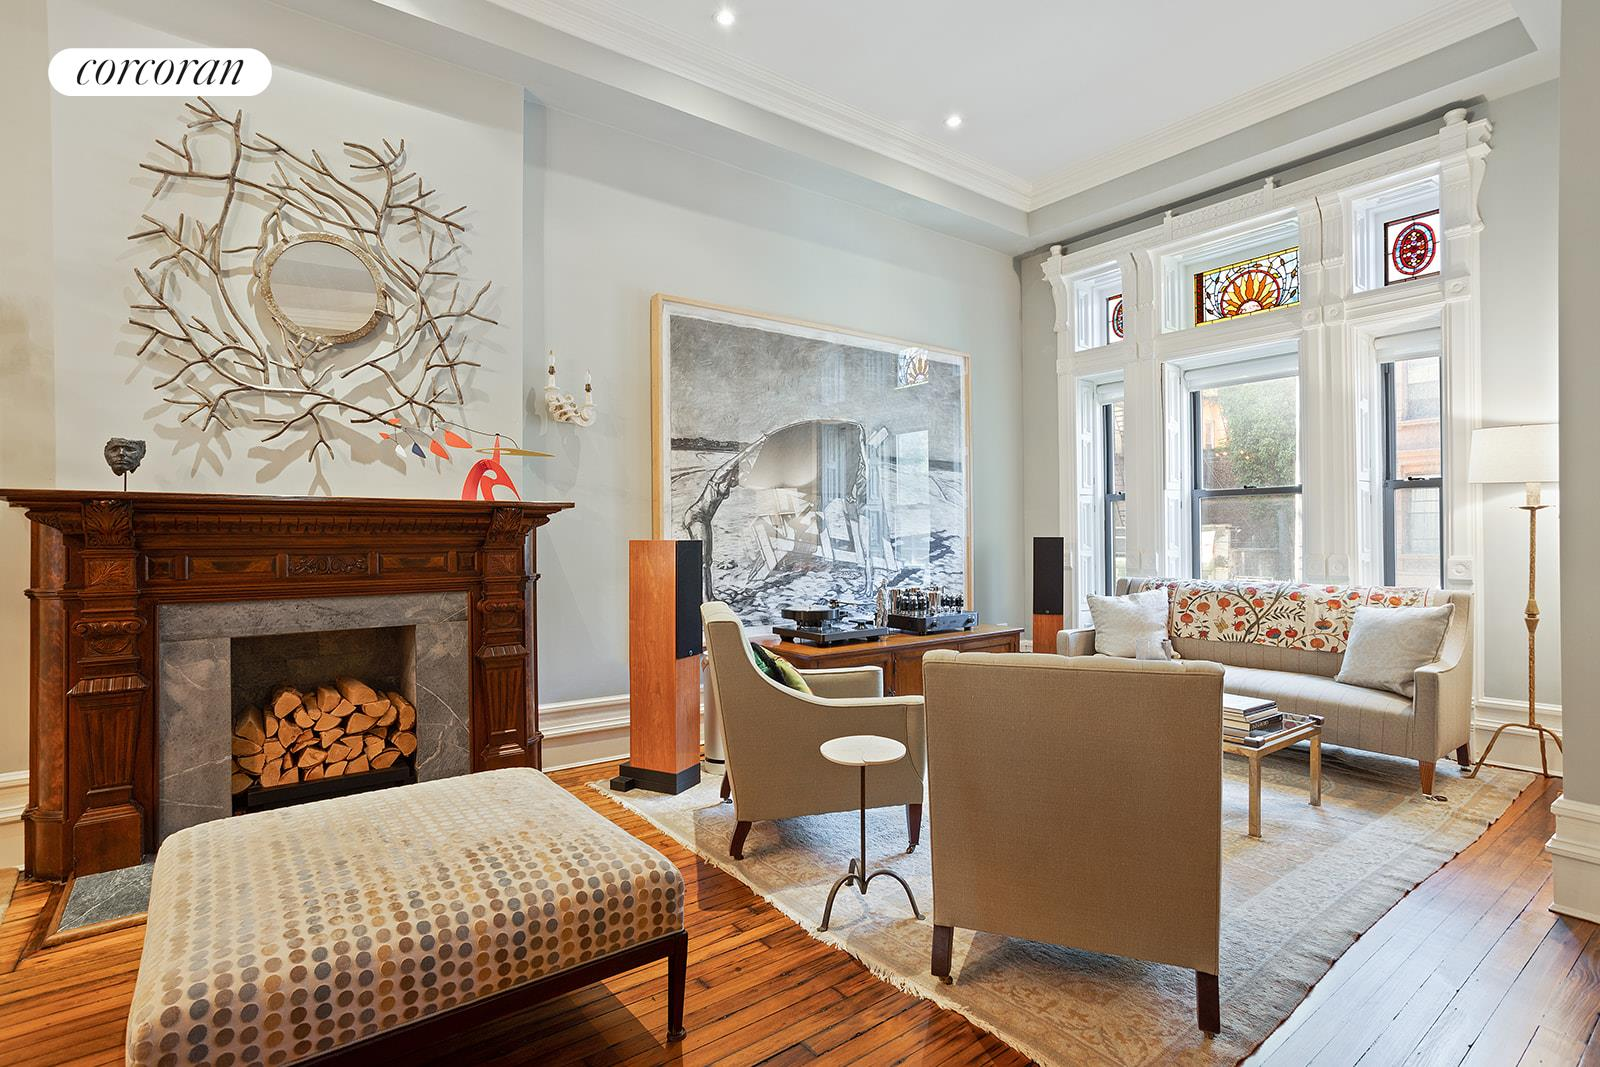 Apartment for sale at 105 West 122nd Street, Apt Building